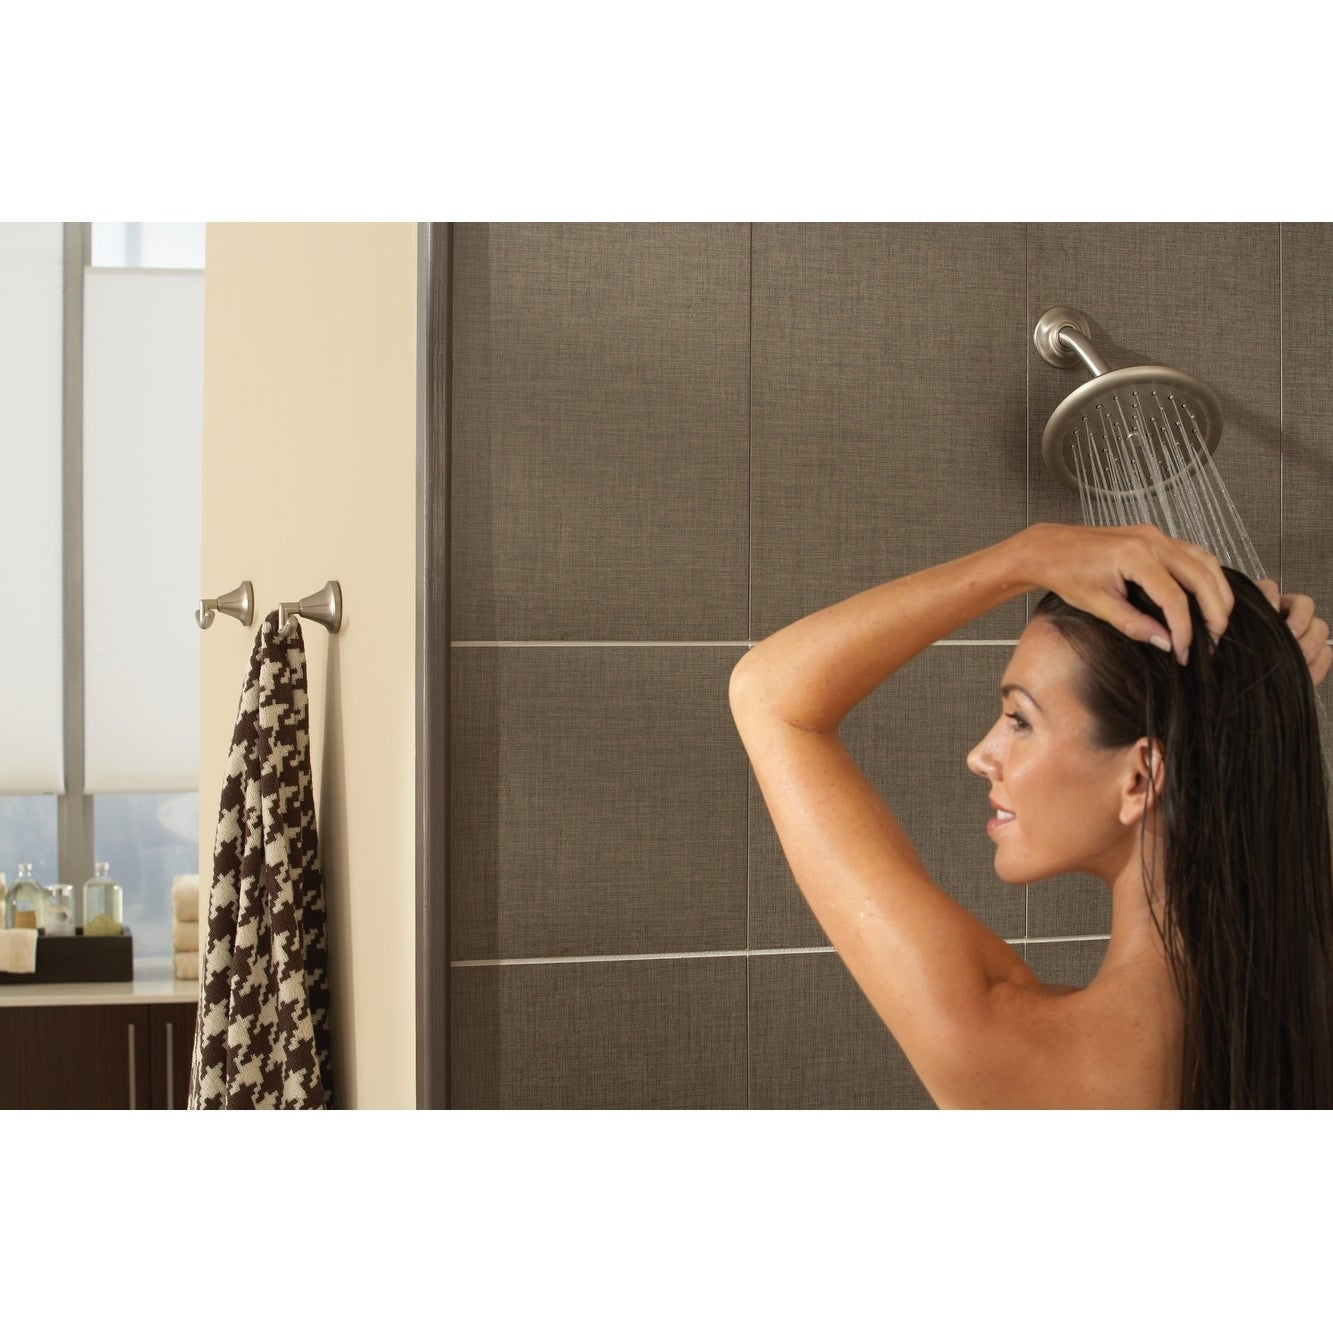 Moen Velocity Two Function 8 Diameter Spray Head Rainshower Brushed Nickel S6320bn